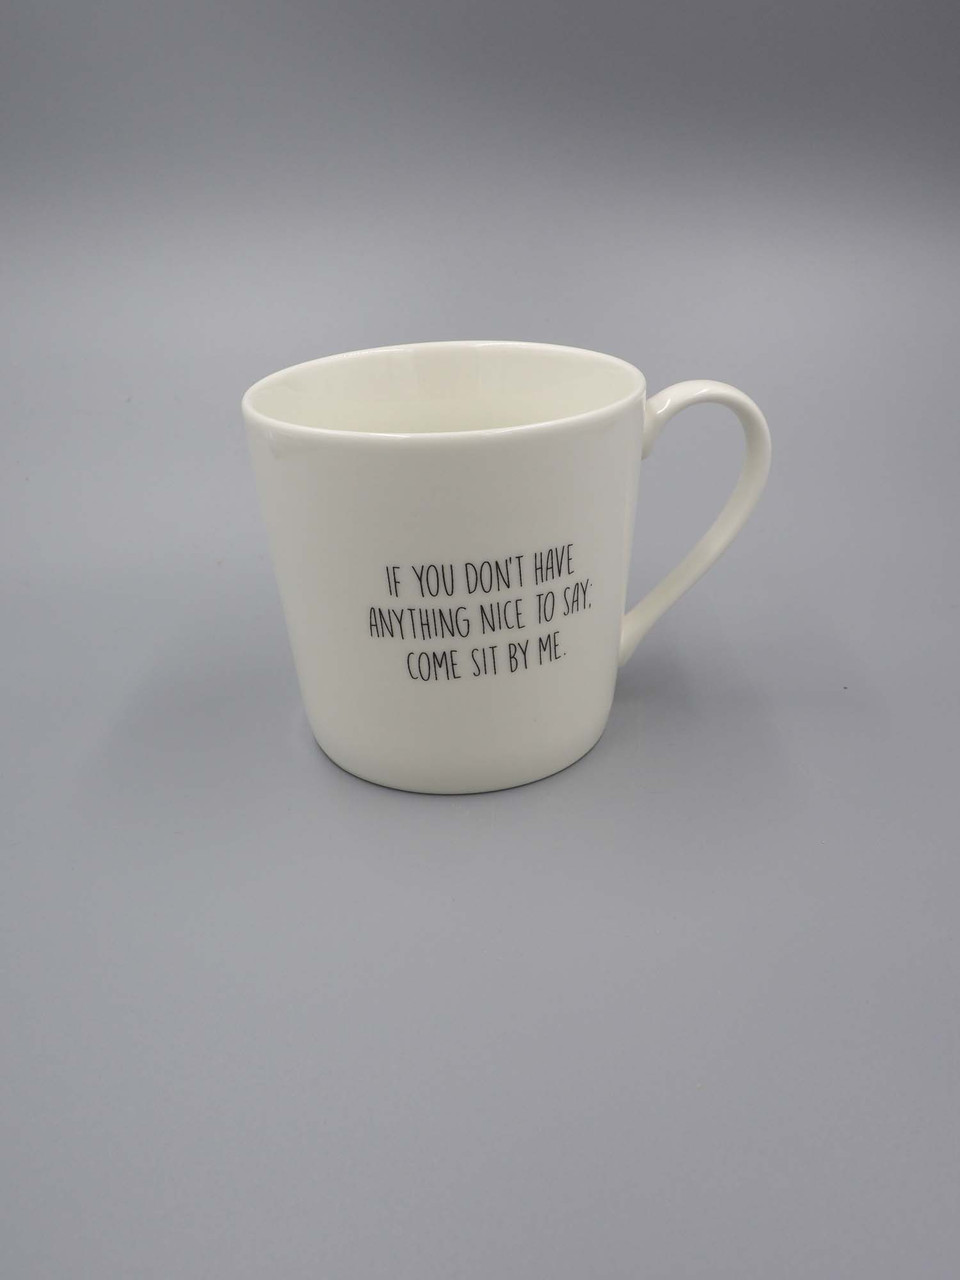 if you don't have anything nice to say come sit by me cafe mug